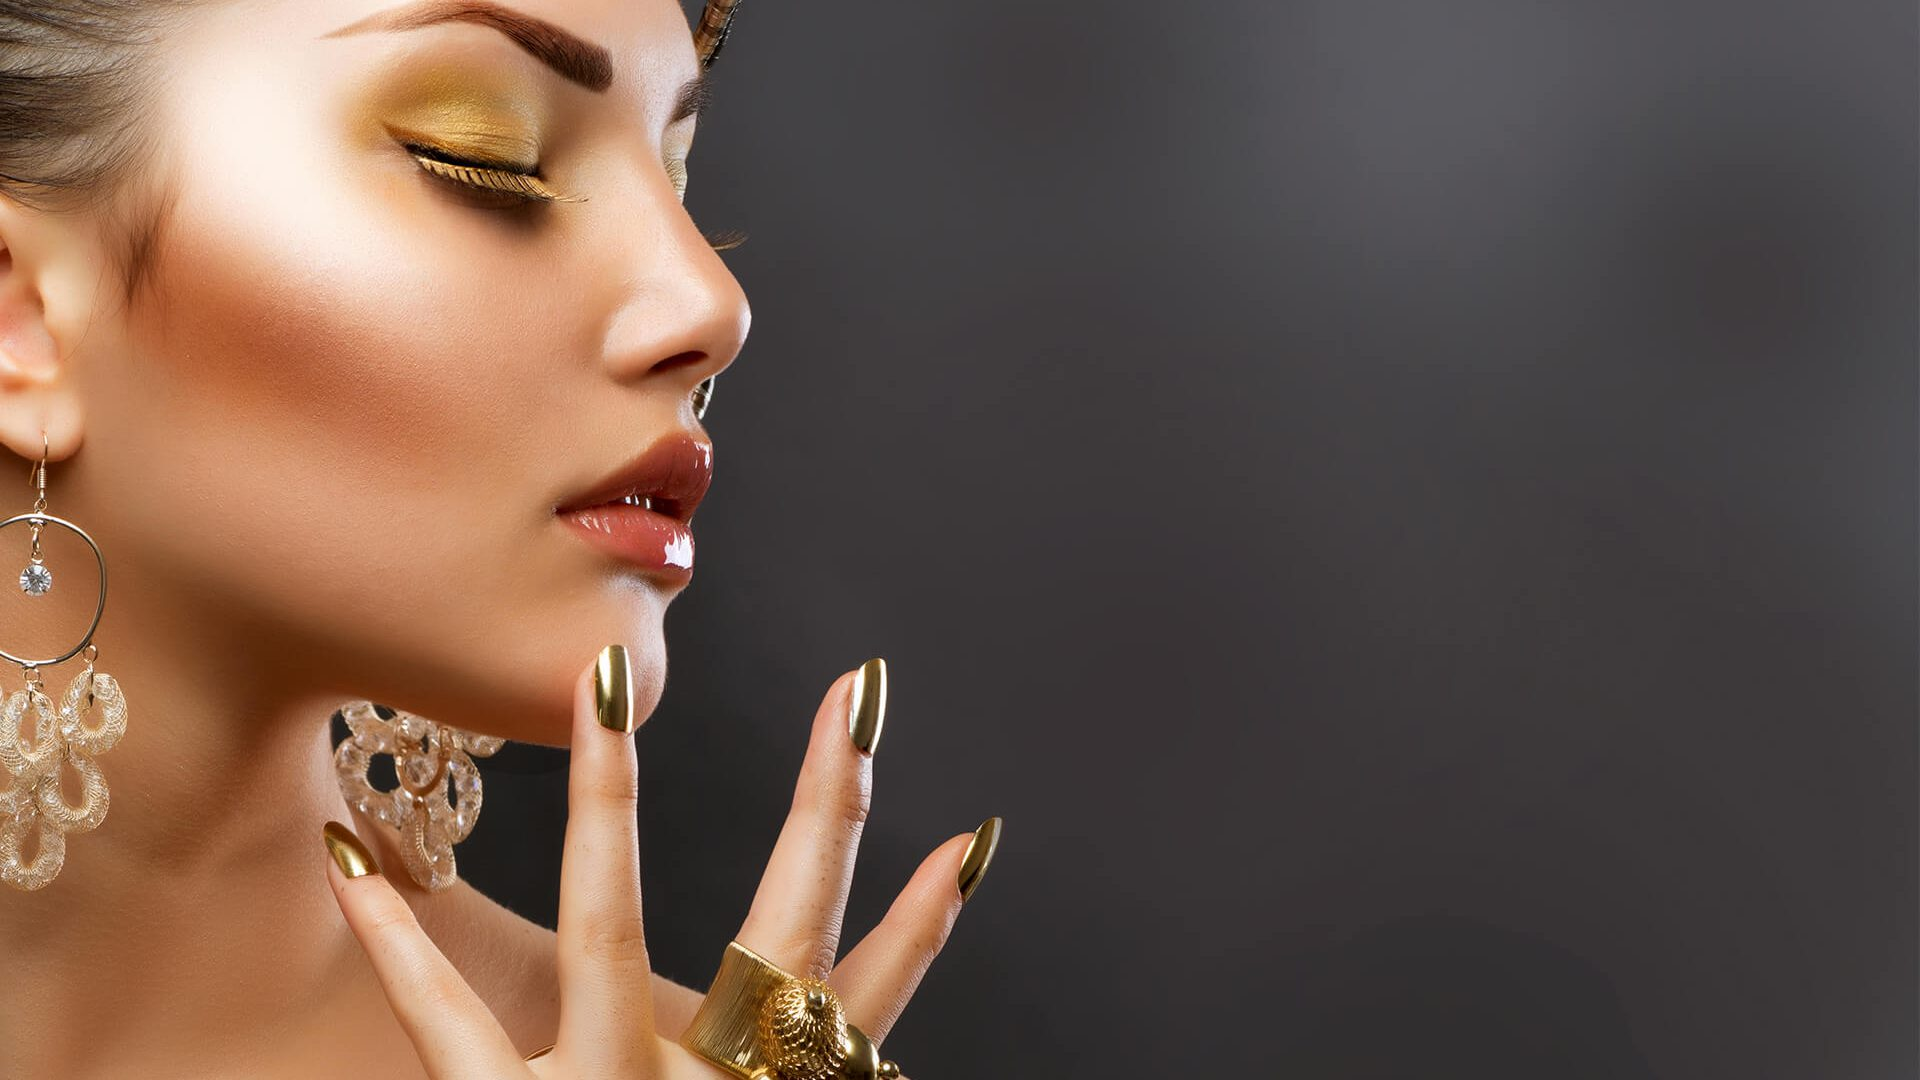 Are facial care sessions a pampering or a health necessity?